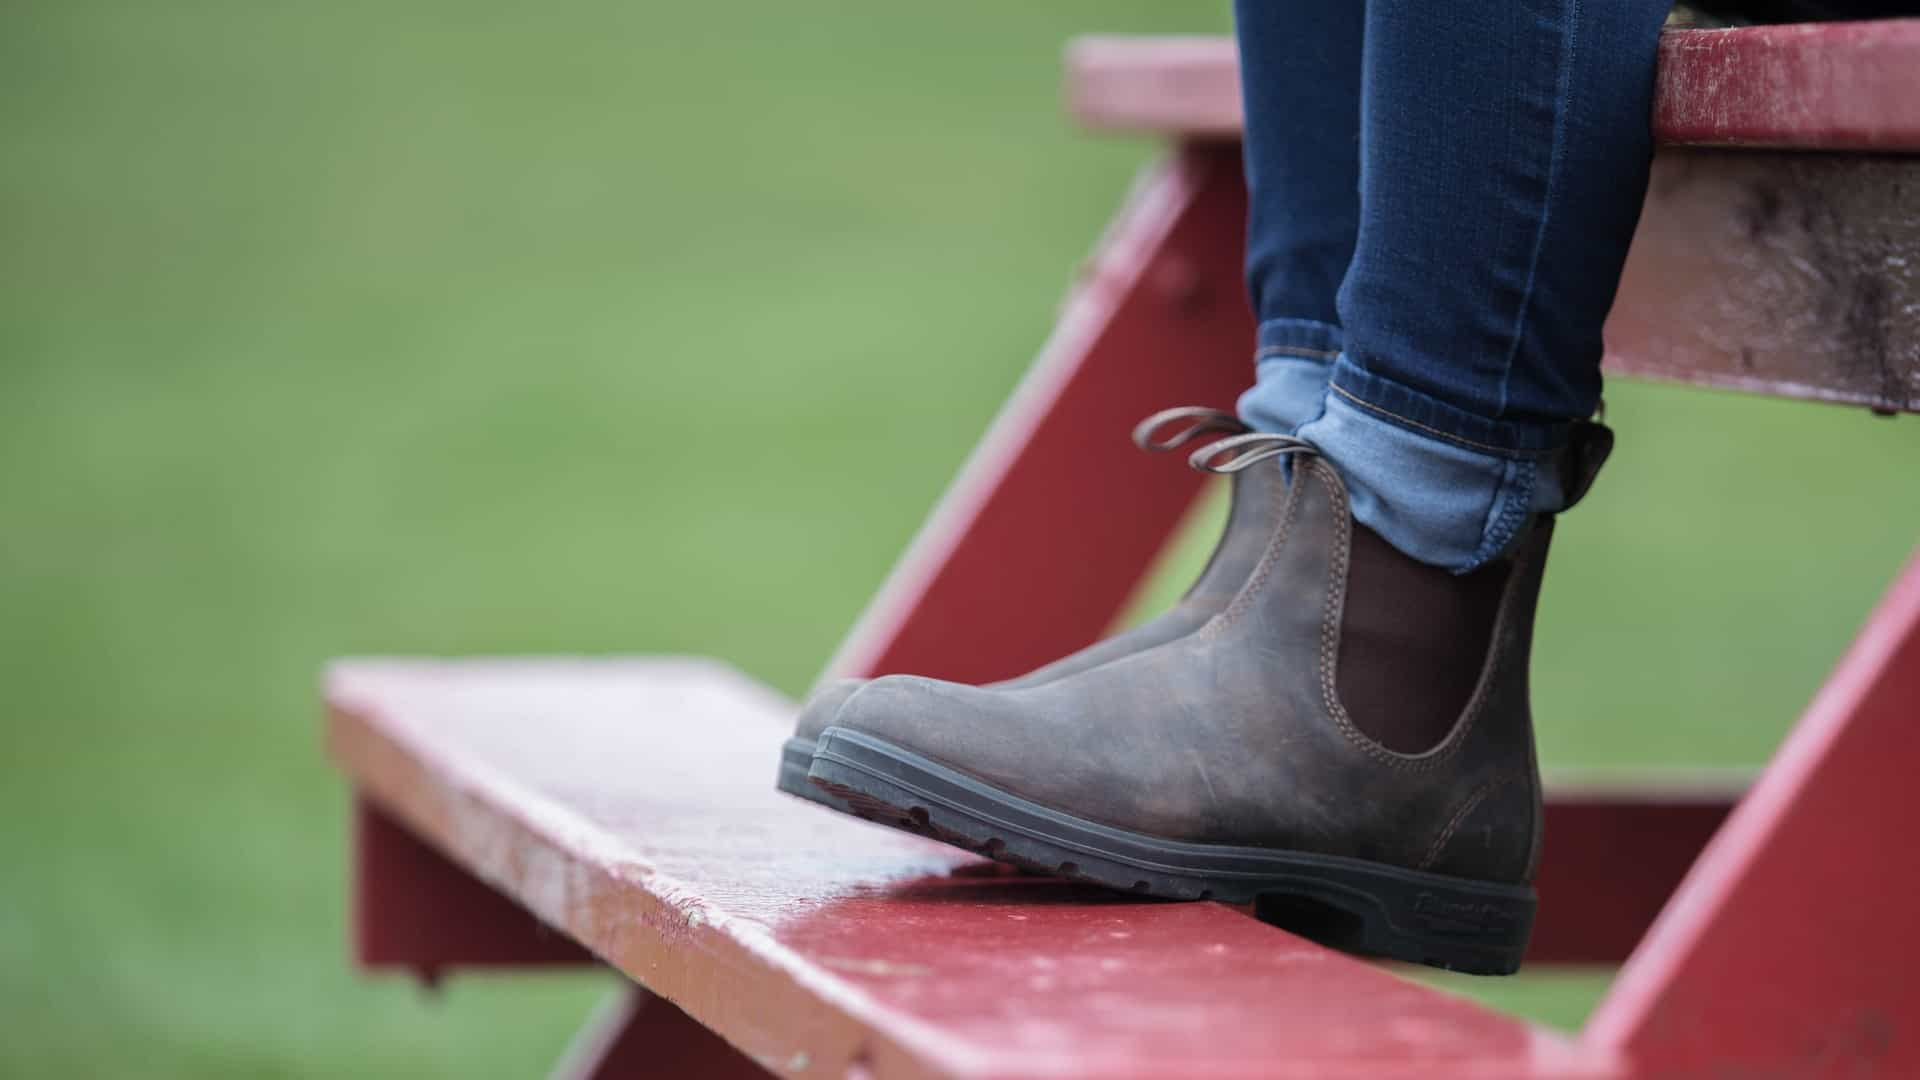 Blundstone on bench